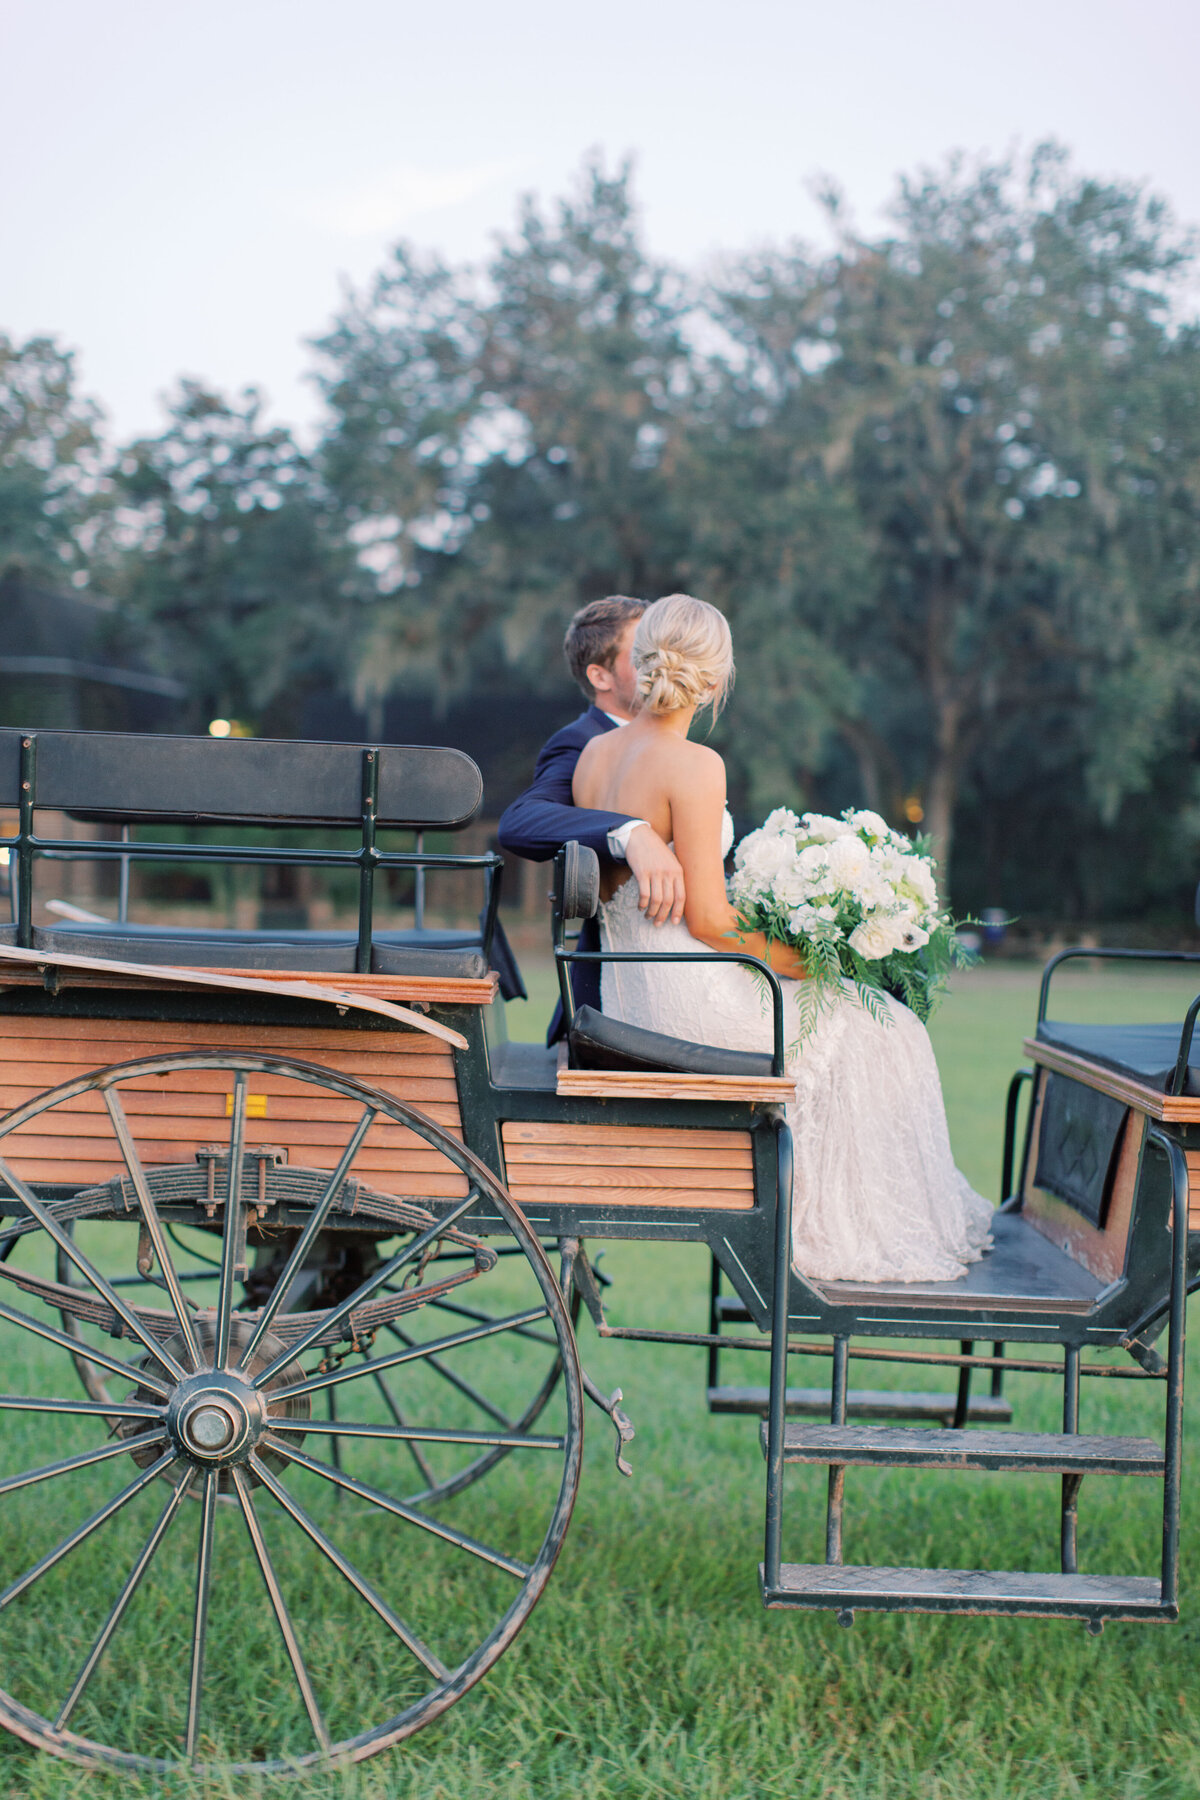 Melton_Wedding__Middleton_Place_Plantation_Charleston_South_Carolina_Jacksonville_Florida_Devon_Donnahoo_Photography__0843